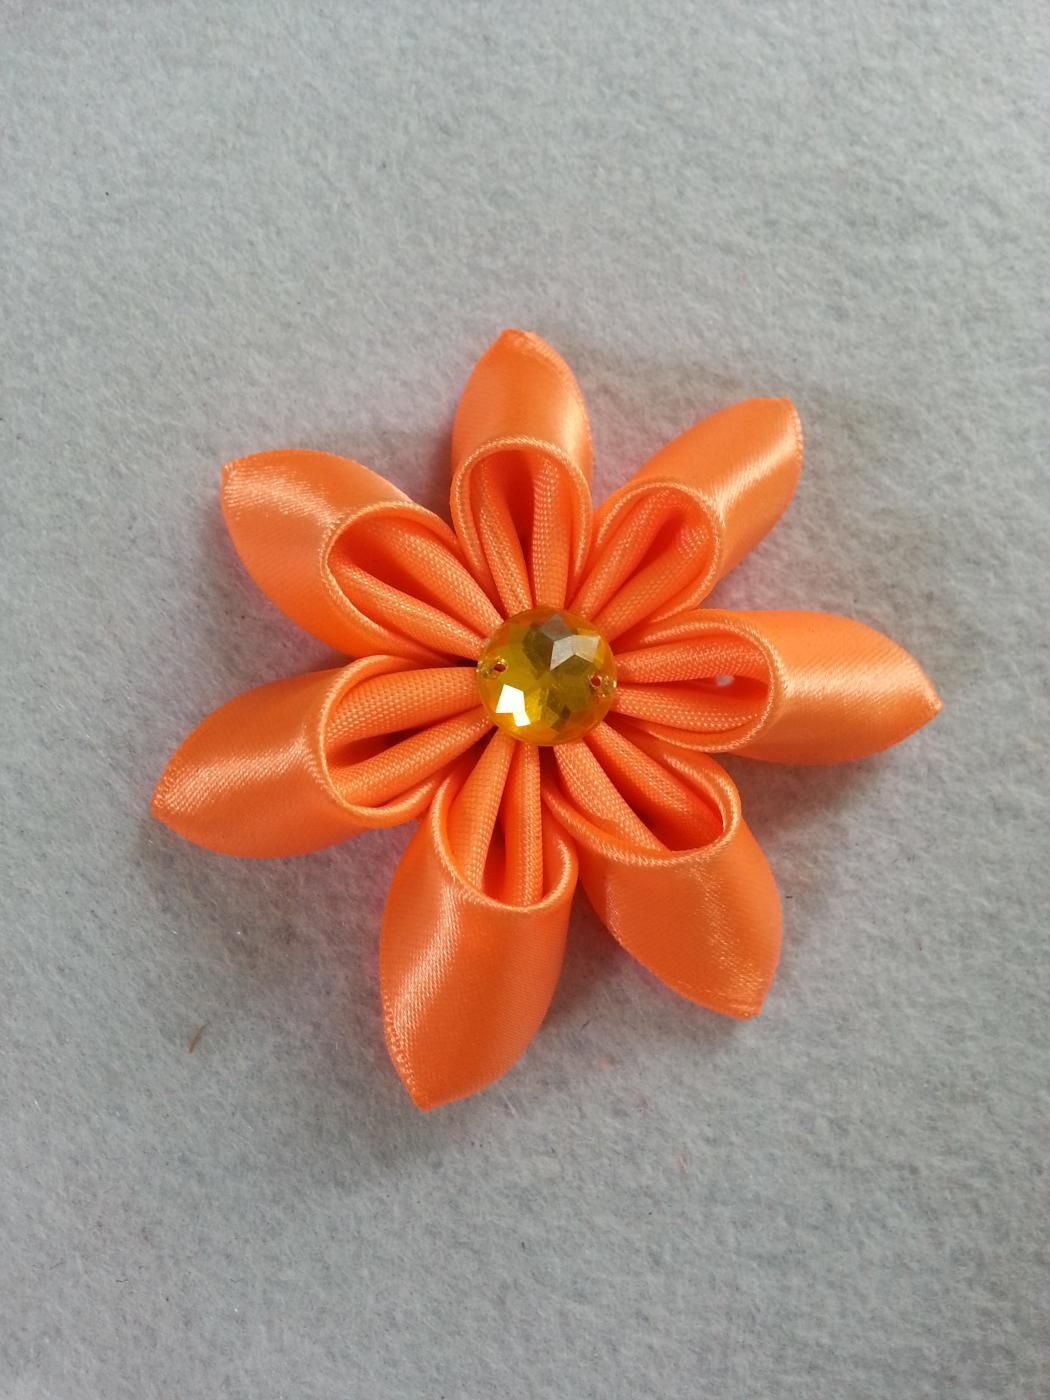 Diy ribbon flower ribbon pinterest fabric glue flower and make beautiful flowers for your craft projects this flower will make a lovely wedding bouquet brighten up your scrapbook make beautiful hair accessories izmirmasajfo